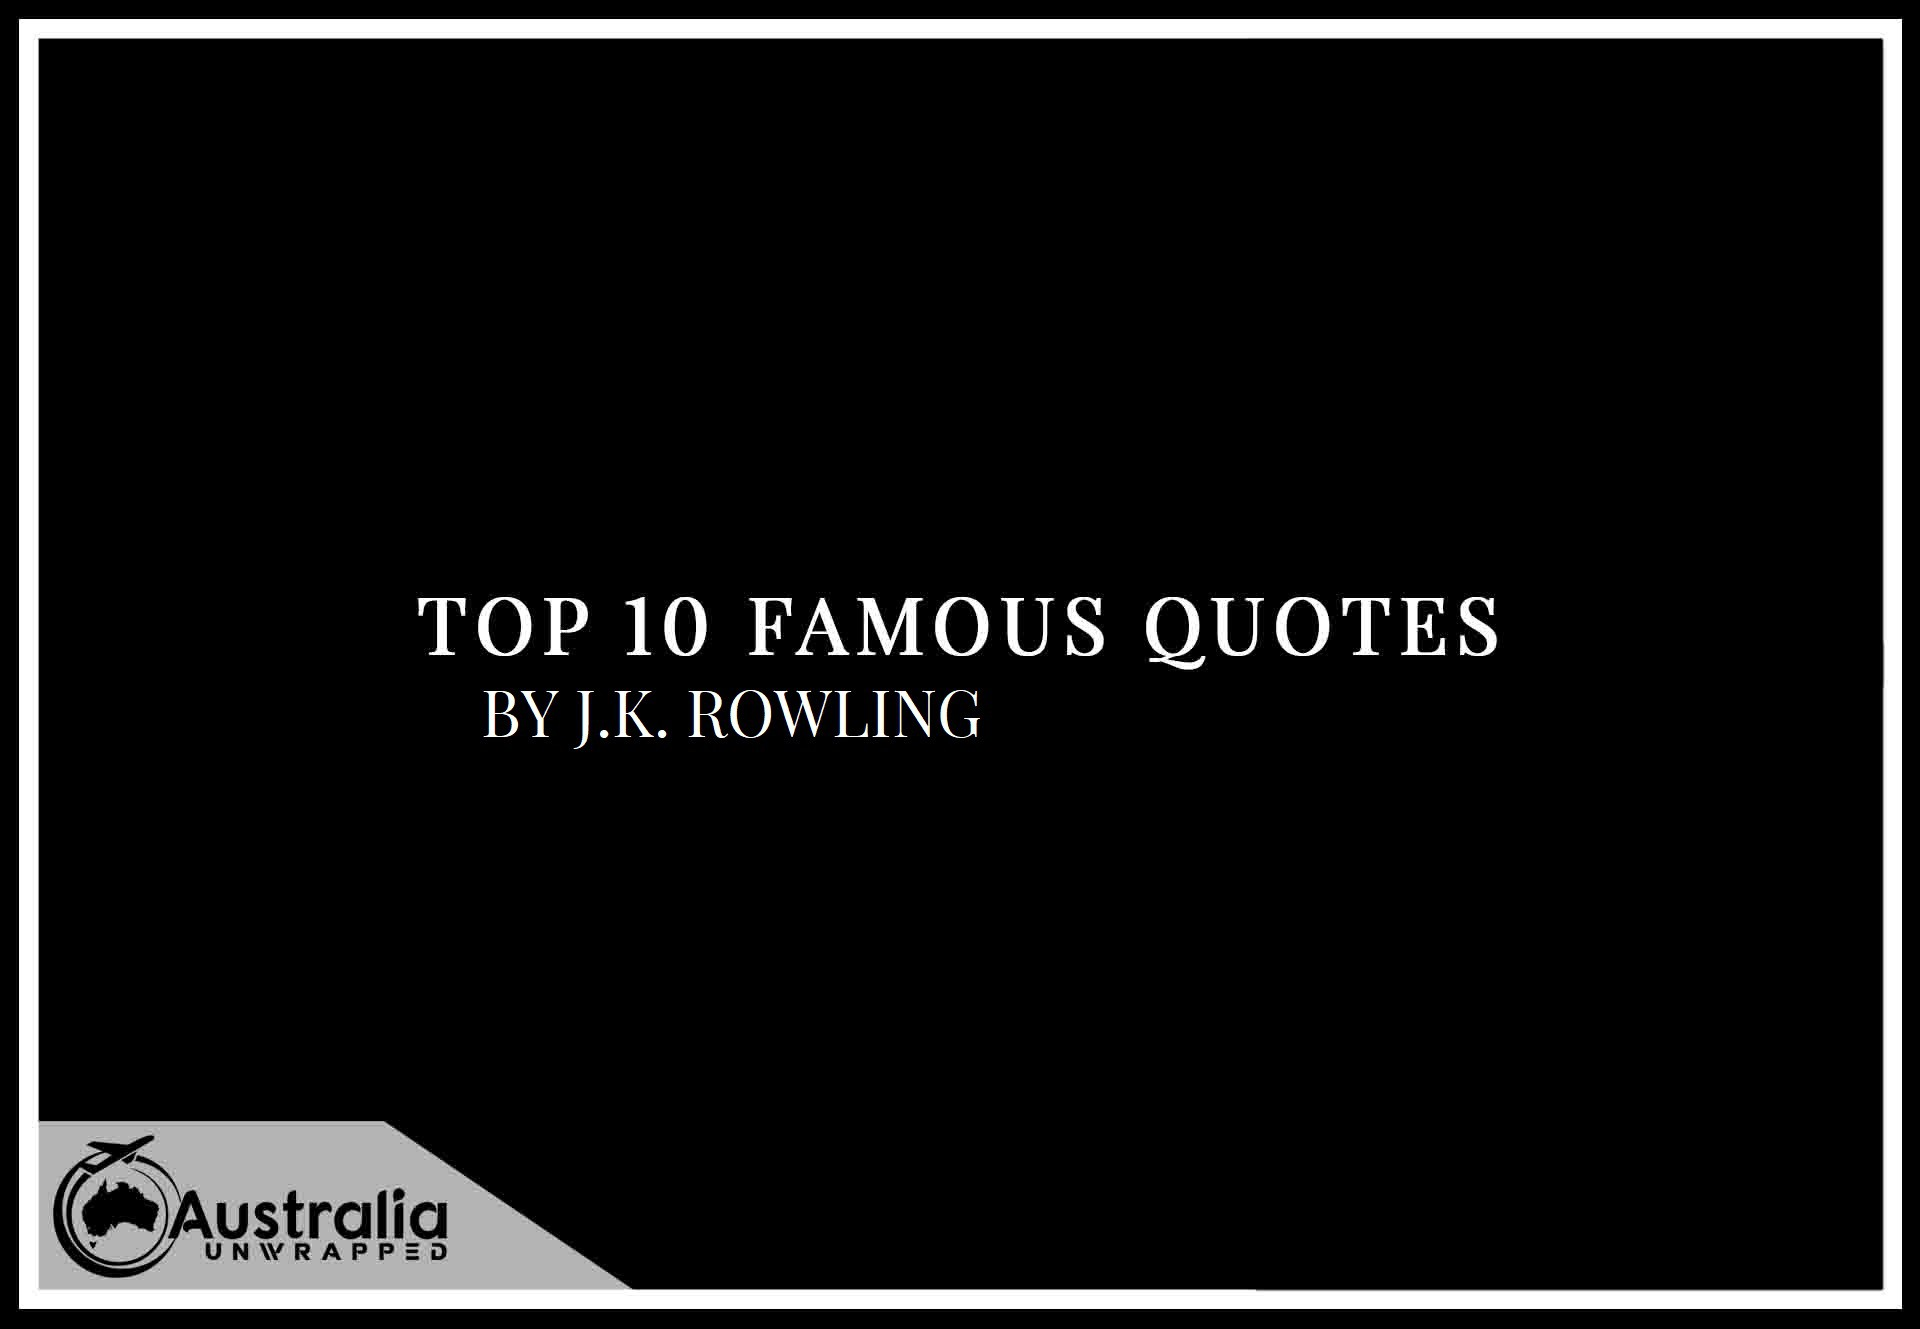 Top 10 Famous Quotes by Author J.K. Rowling